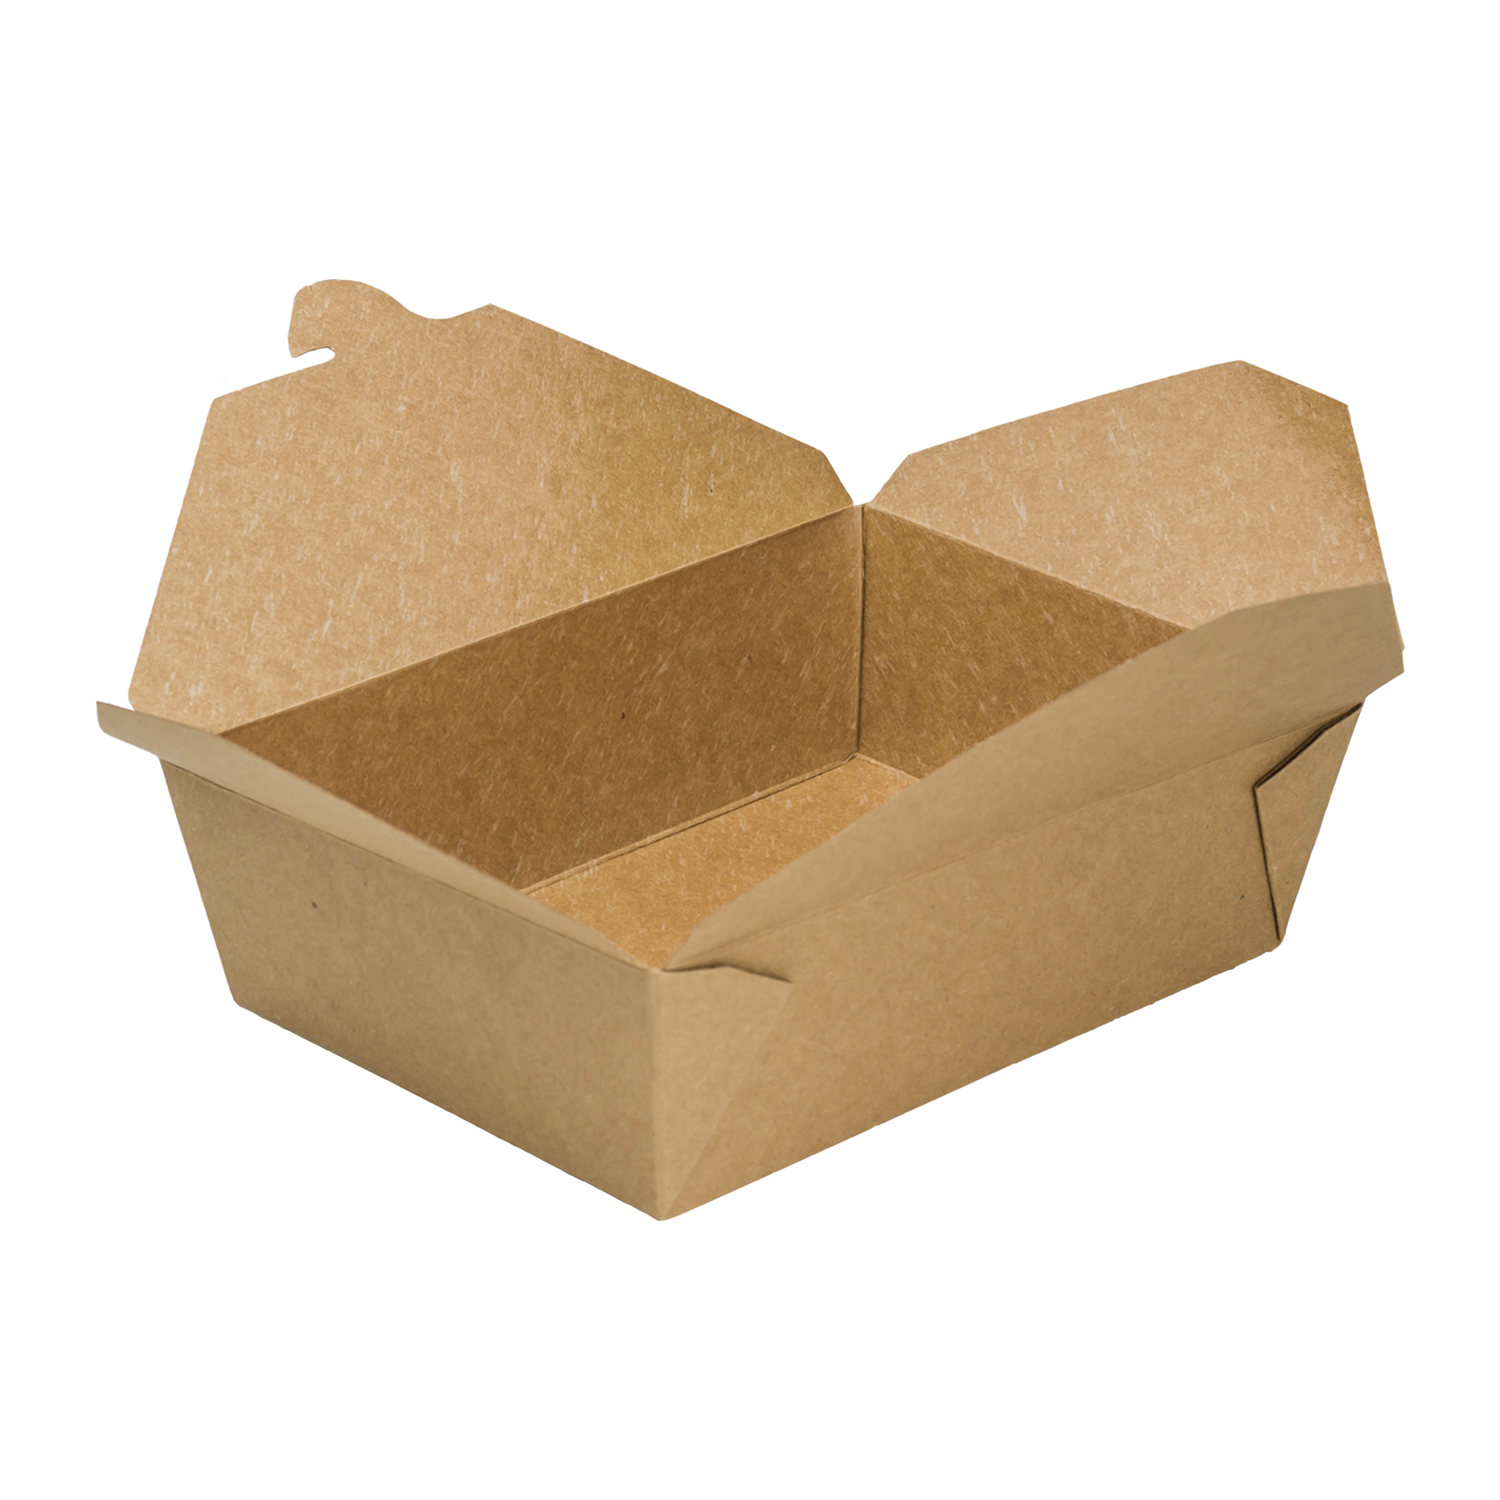 "Fold-To-Go container #3, Size: 7.8""x5.5""x2.4"", Color: Natural, Capacity: 76 fl oz., 200/cs"